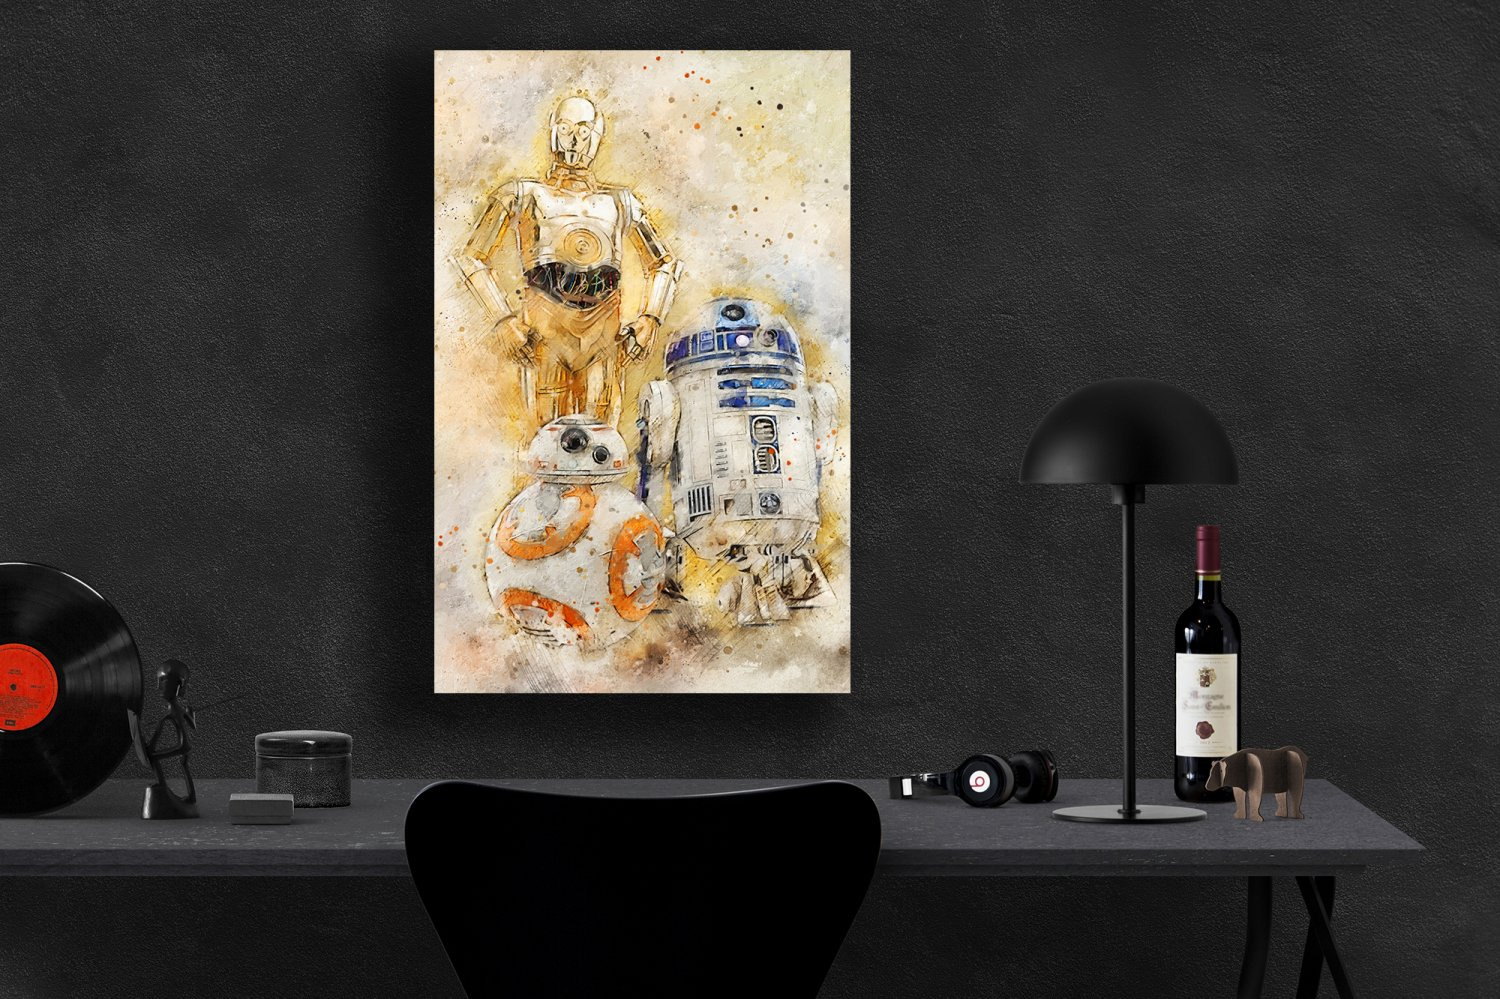 Star Wars, BB-8, C-3PO, R2-D2, Movie  18x28 inches Poster Print